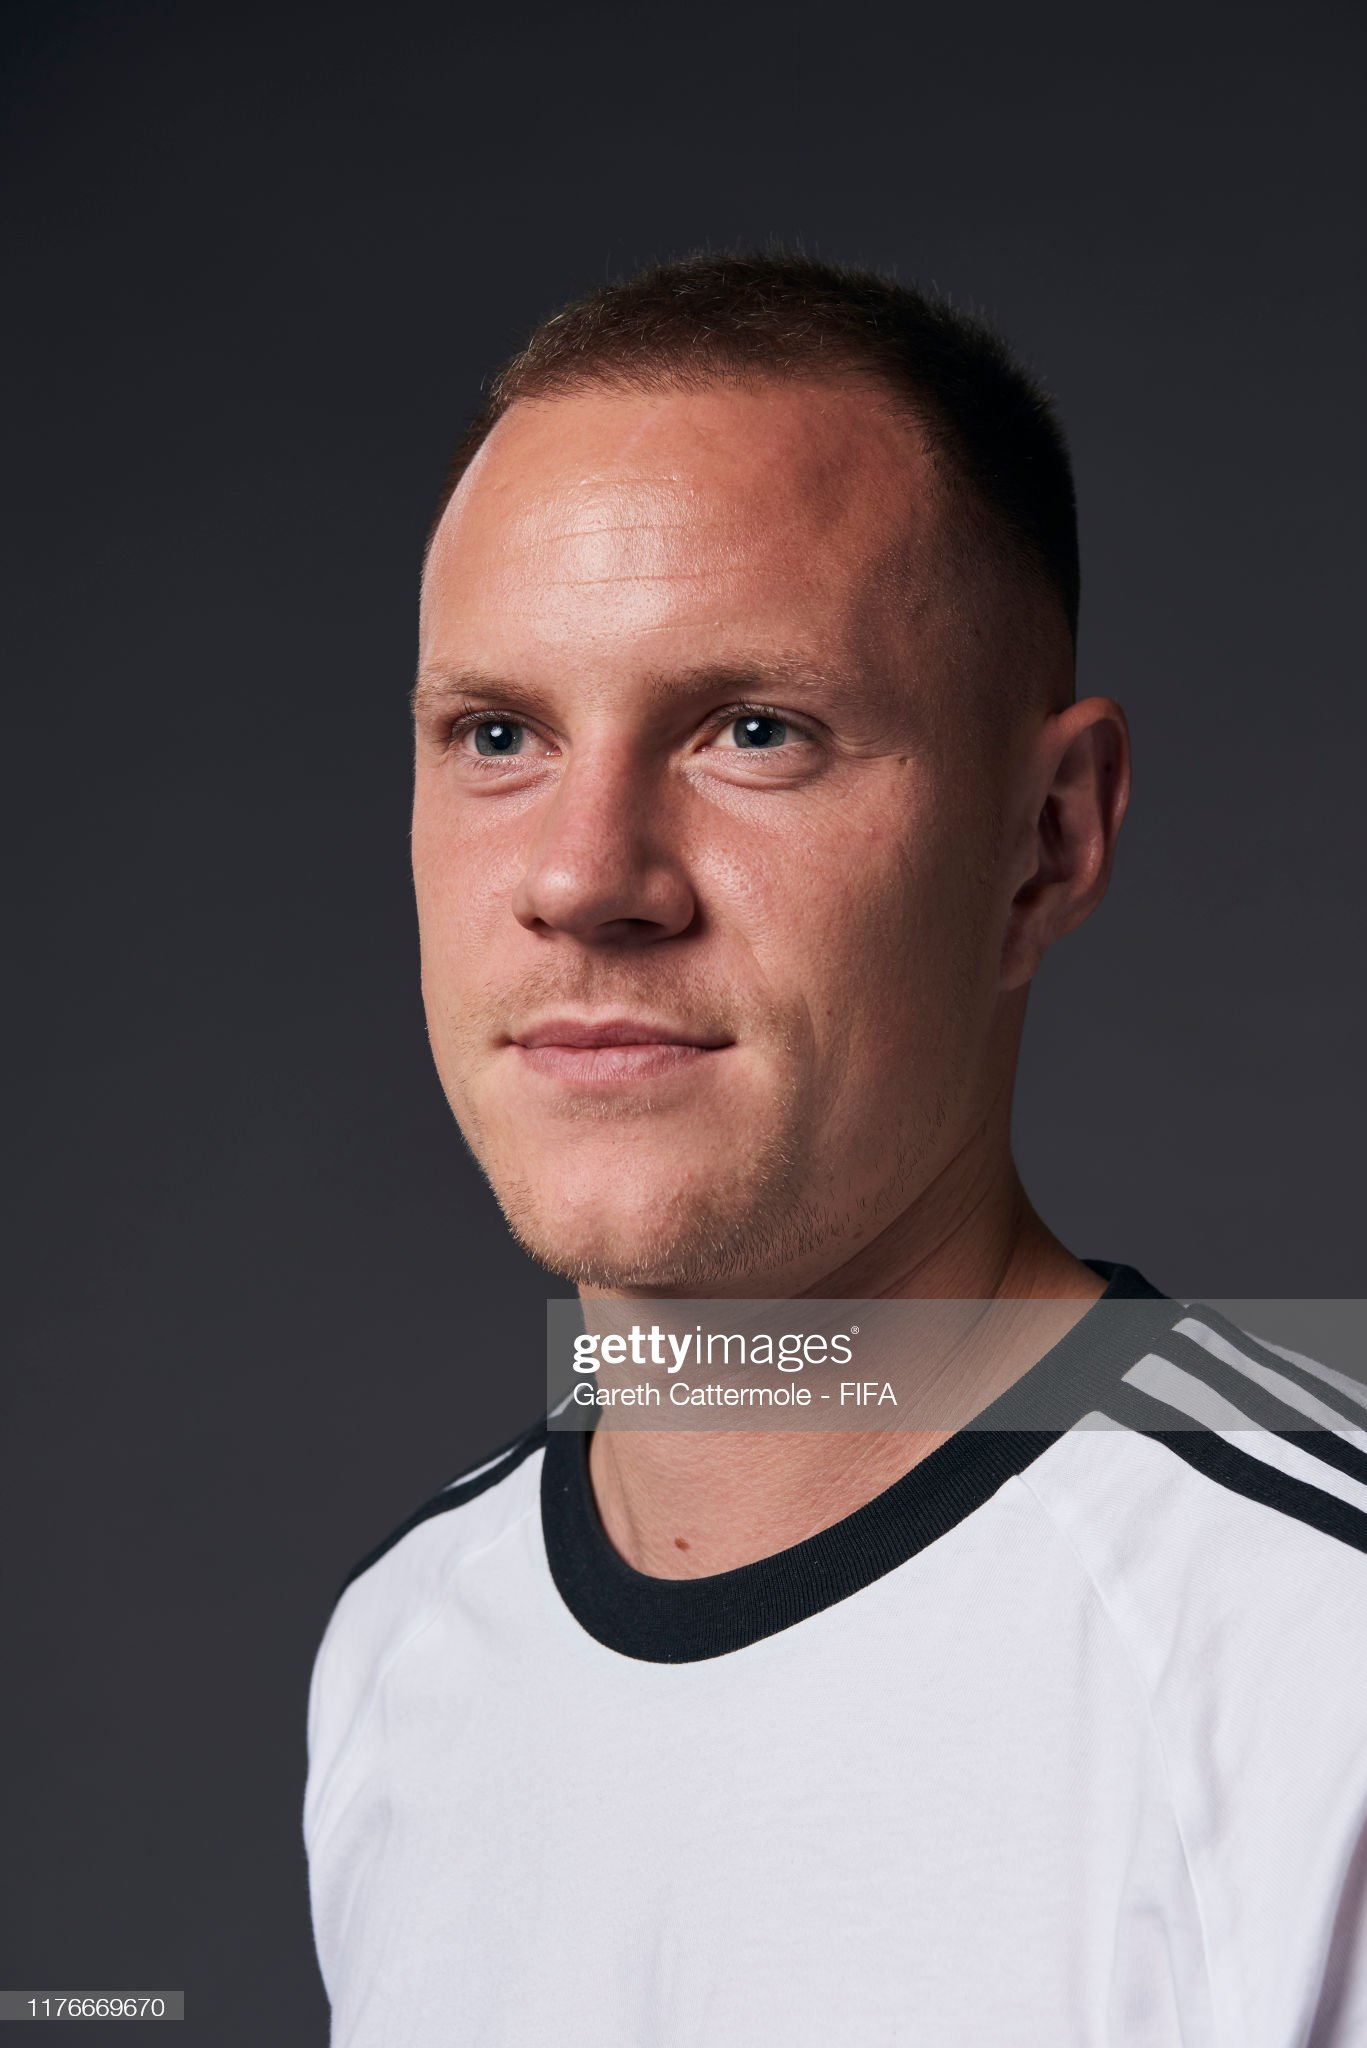 The Best FIFA Football Awards 2019 The-best-fifa-mens-goalkeeper-award-finalist-marc-andre-ter-stegen-of-picture-id1176669670?s=2048x2048